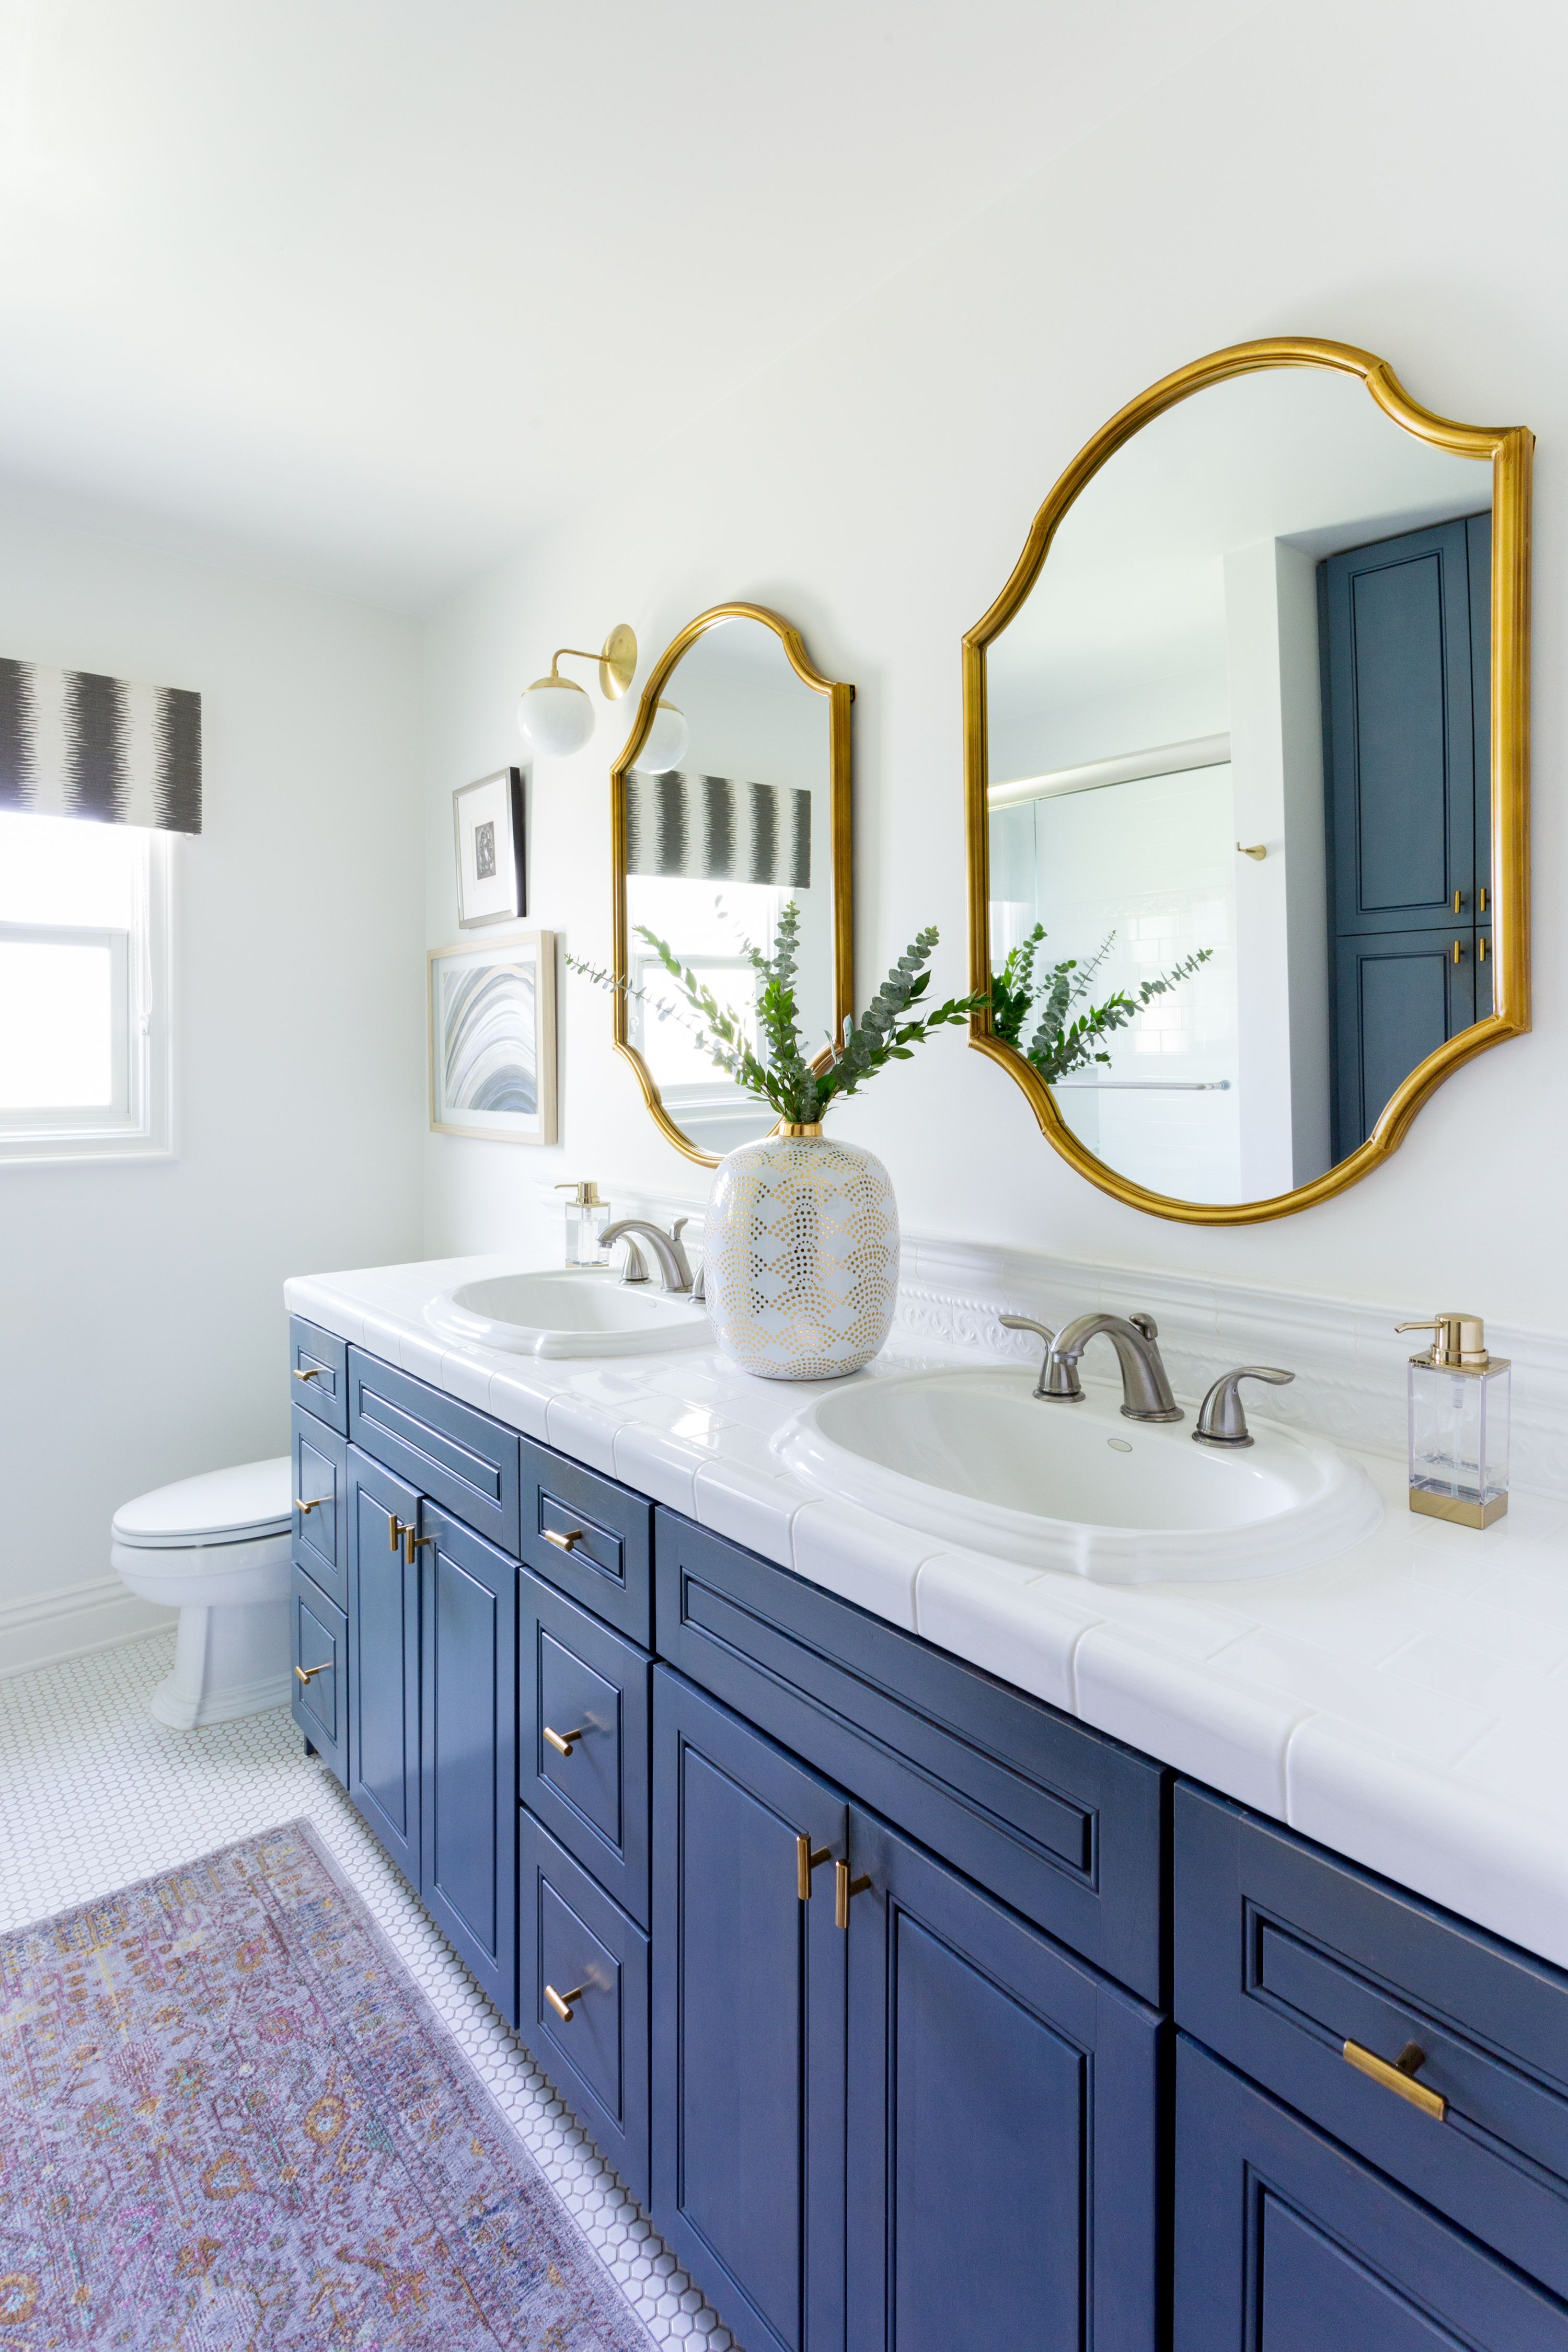 Blue And White Bathroom Gold Framed Mirrors His And Her Sinks Blue Cabinetry Vintage Runner Jen Blue Bathroom Decor Gold Bathroom Decor Gold Bathroom [ 4500 x 3000 Pixel ]